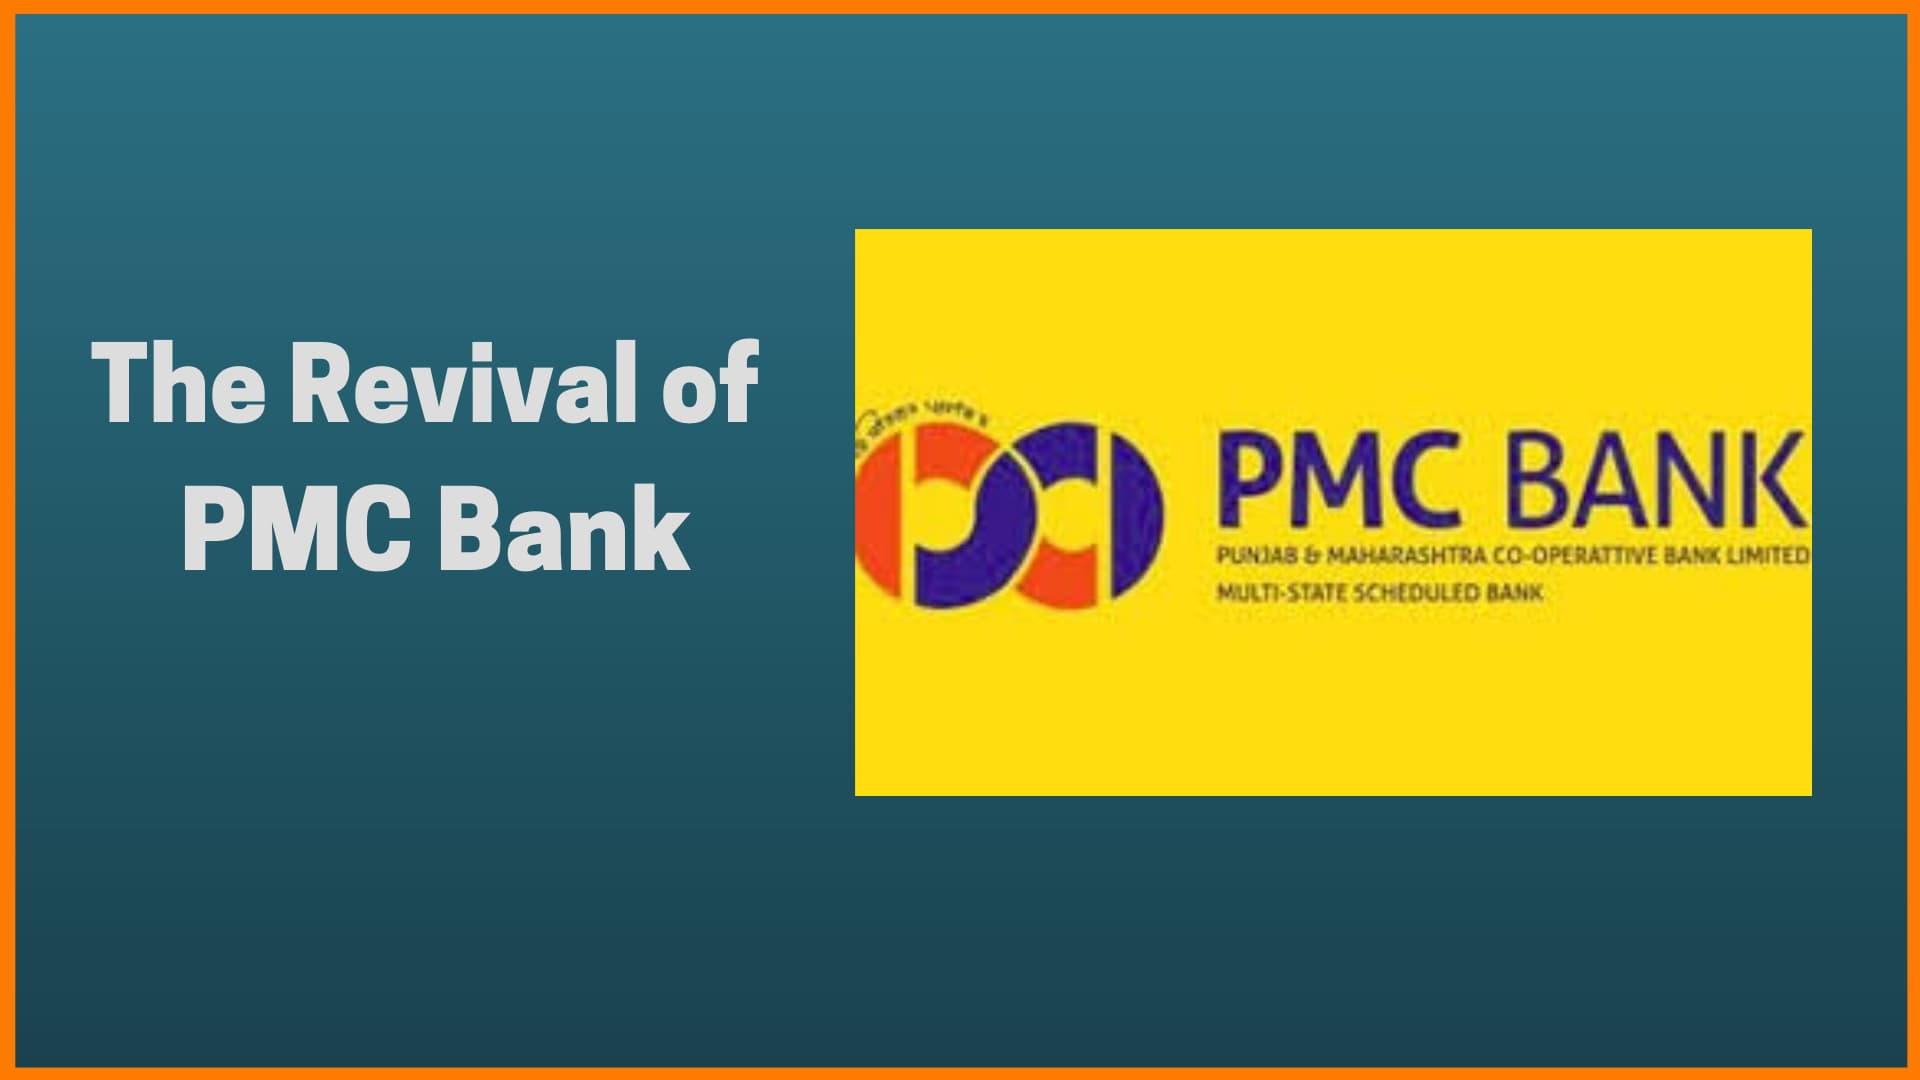 The Revival of Punjab-Maharashtra Co-operative Bank